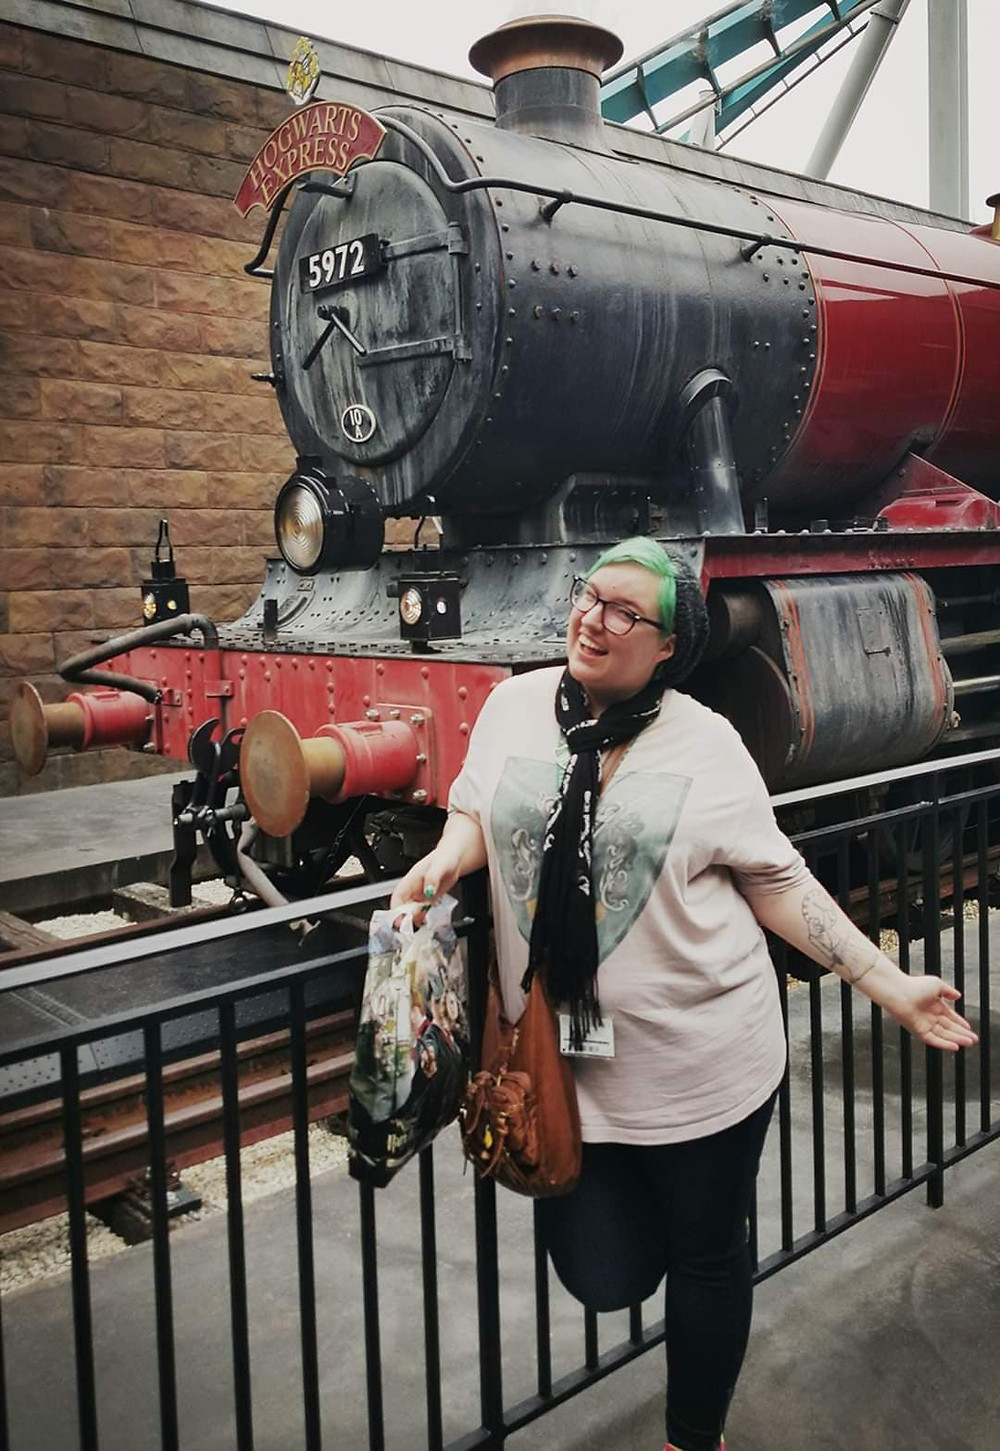 Erica Dobbins, guest blogger for the fandombar.com Community bLog: Mothers and Women in Harry Potter